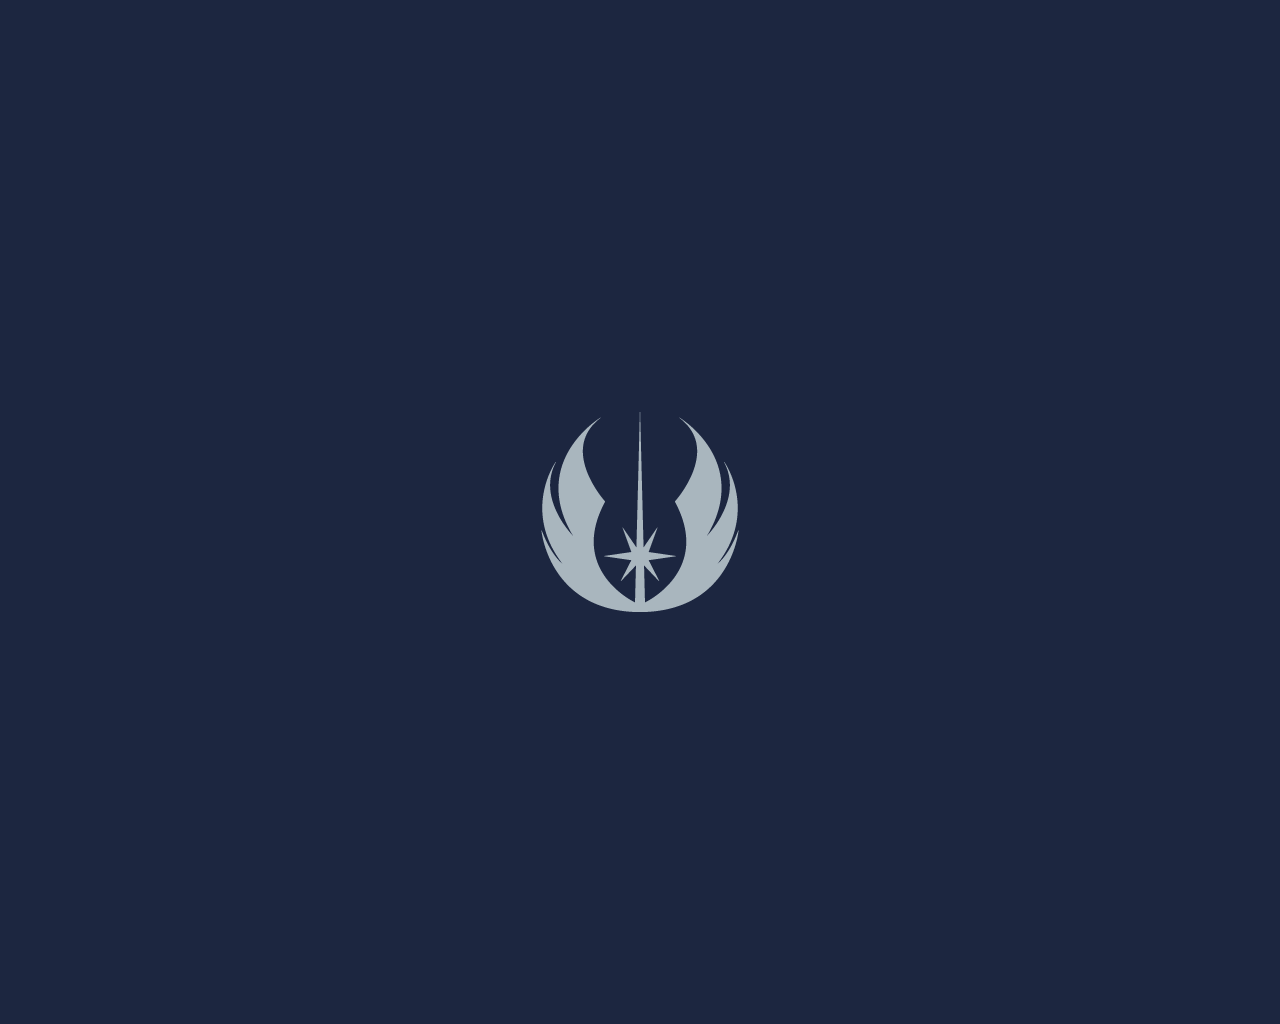 Minimalist Star Wars Wallpaper Jedi Emblem By Diros On Deviantart